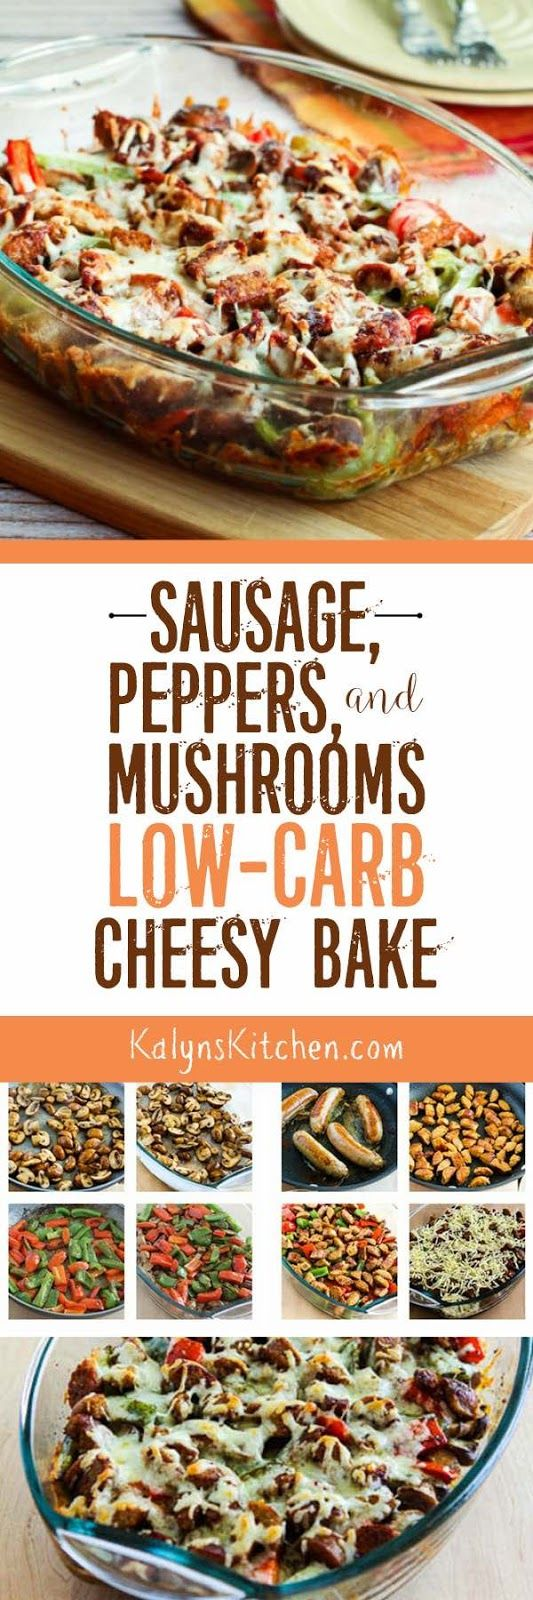 19 best diabetic mealsfoods images on pinterest clean eating sausage peppers and mushrooms low carb cheesy bake is easy and delicious for a quick dinner i subbed the peppers for green beans family loved it forumfinder Image collections